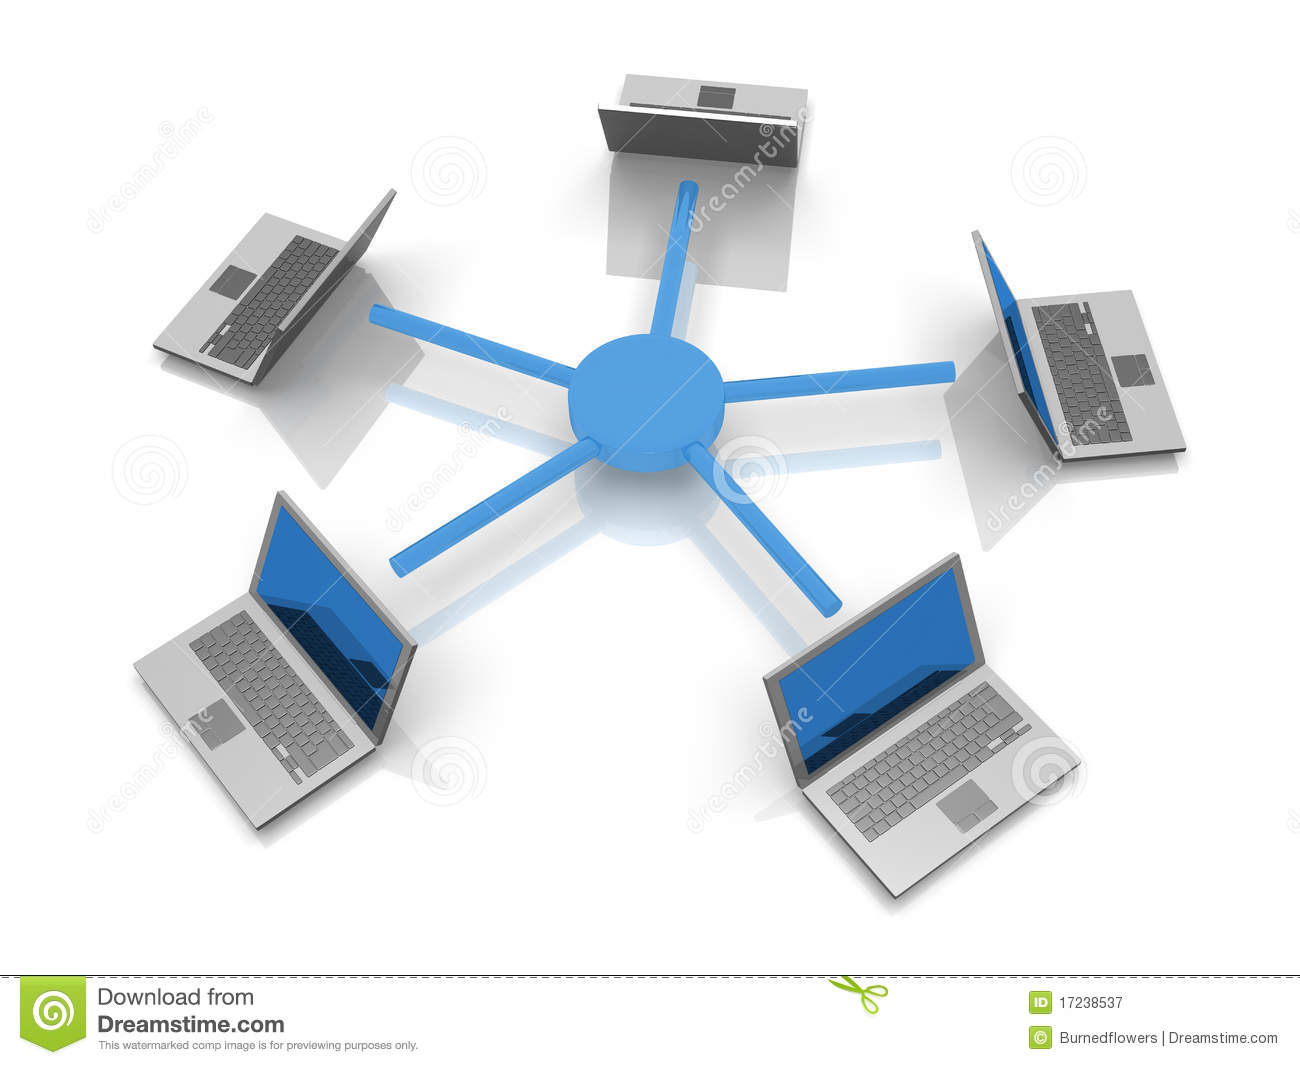 ... Topology With Laptops Royalty Free Stock Photography - Image: 17238537: www.dreamstime.com/royalty-free-stock-photography-star-network...